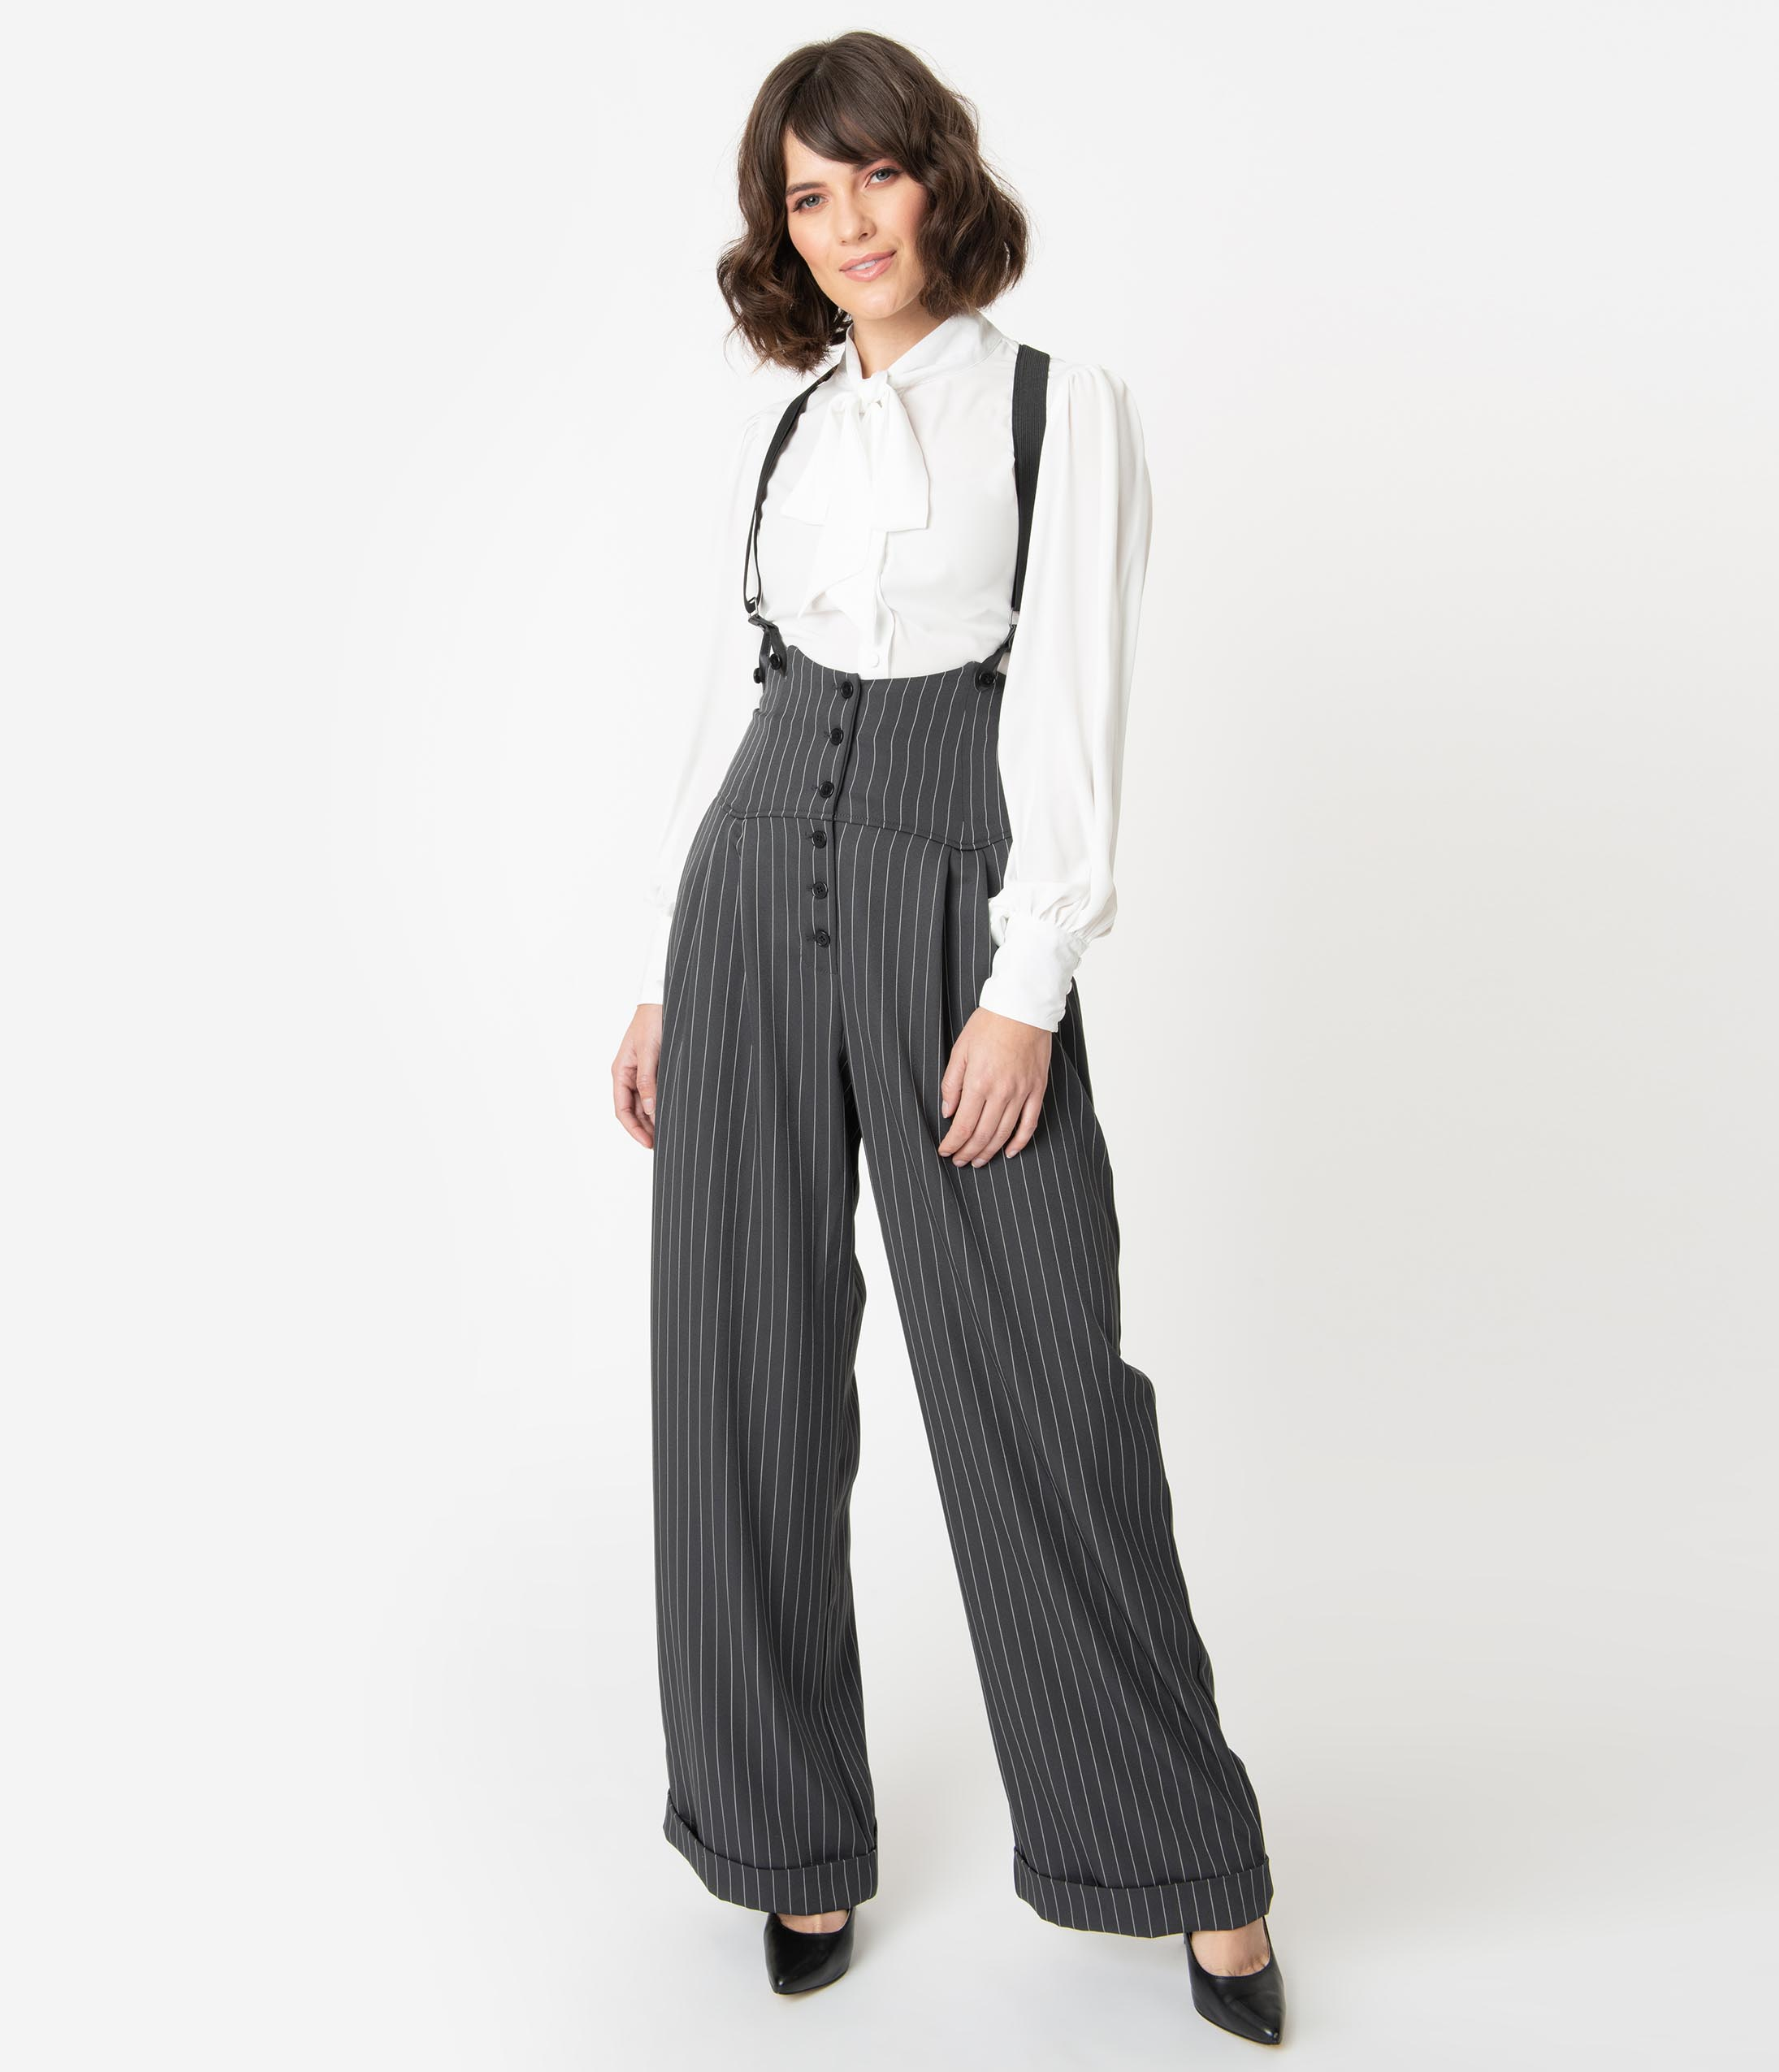 1950s Pants History for Women Unique Vintage 1930S Charcoal Grey Pinstripe Thelma Suspender Pants $78.00 AT vintagedancer.com